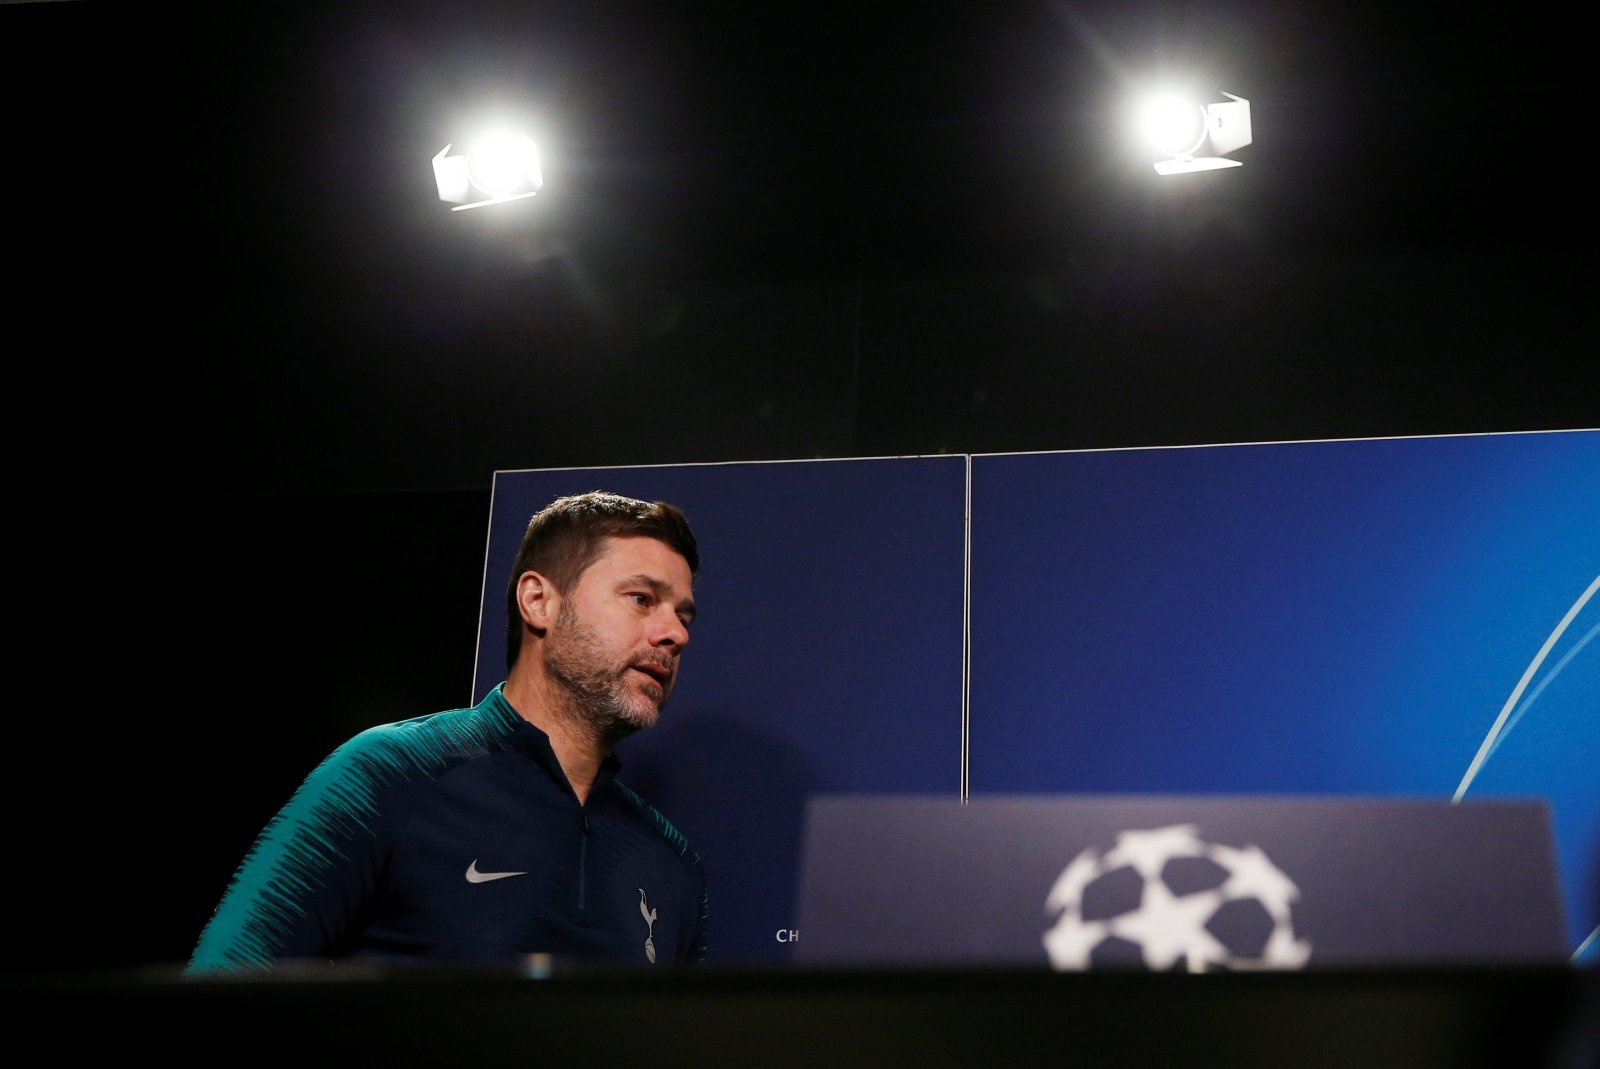 Opinion: Pochettino should move on after taking Spurs as far as he can